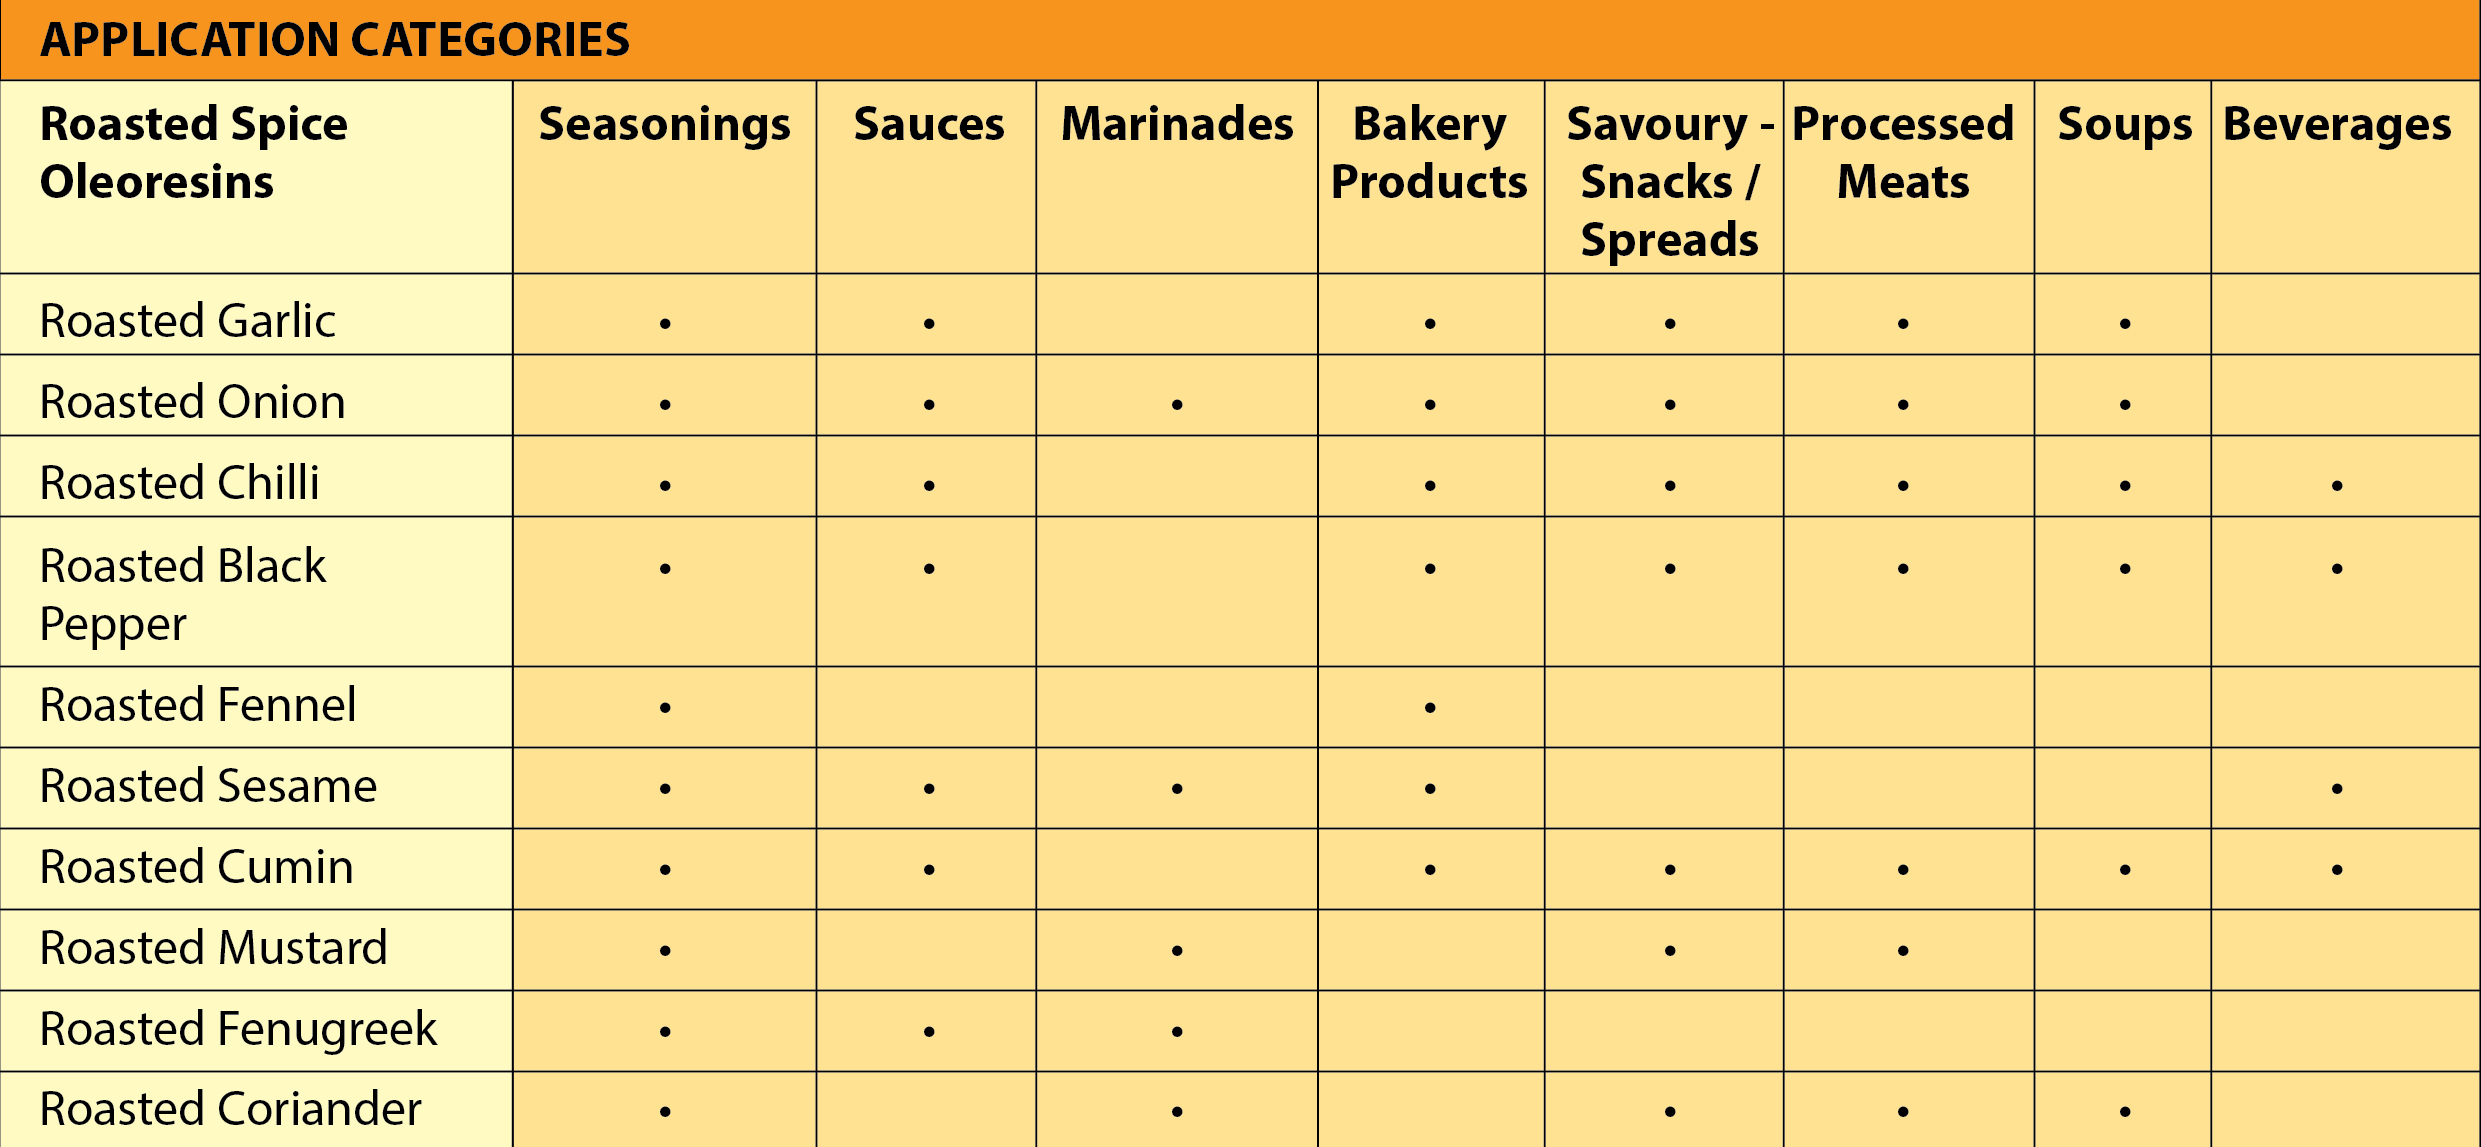 Application categories - Clean label ingredient solutions you can indulge in without fear